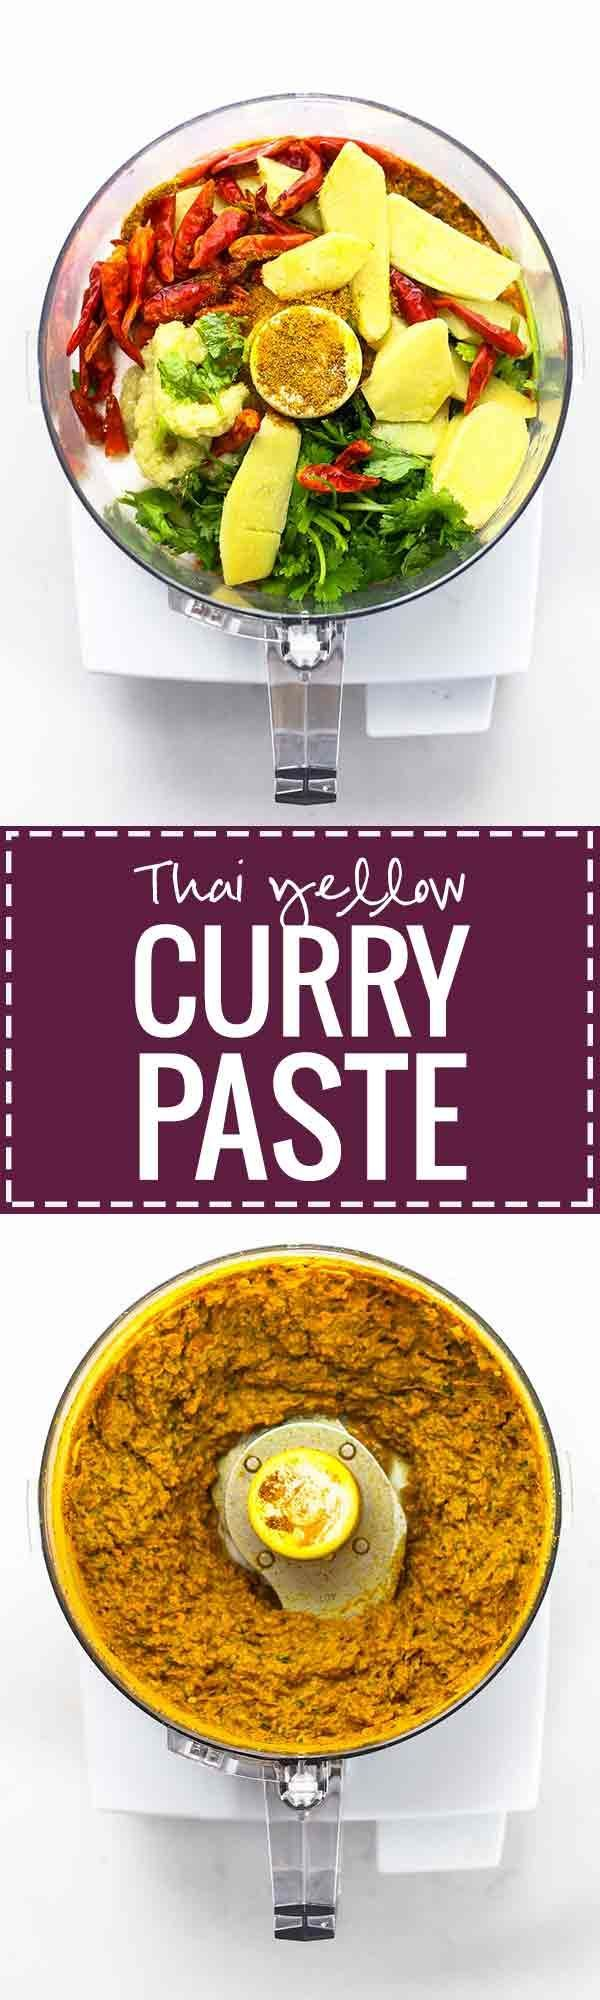 thai yellow curry on pinterest thai yellow curry paste yellow curry